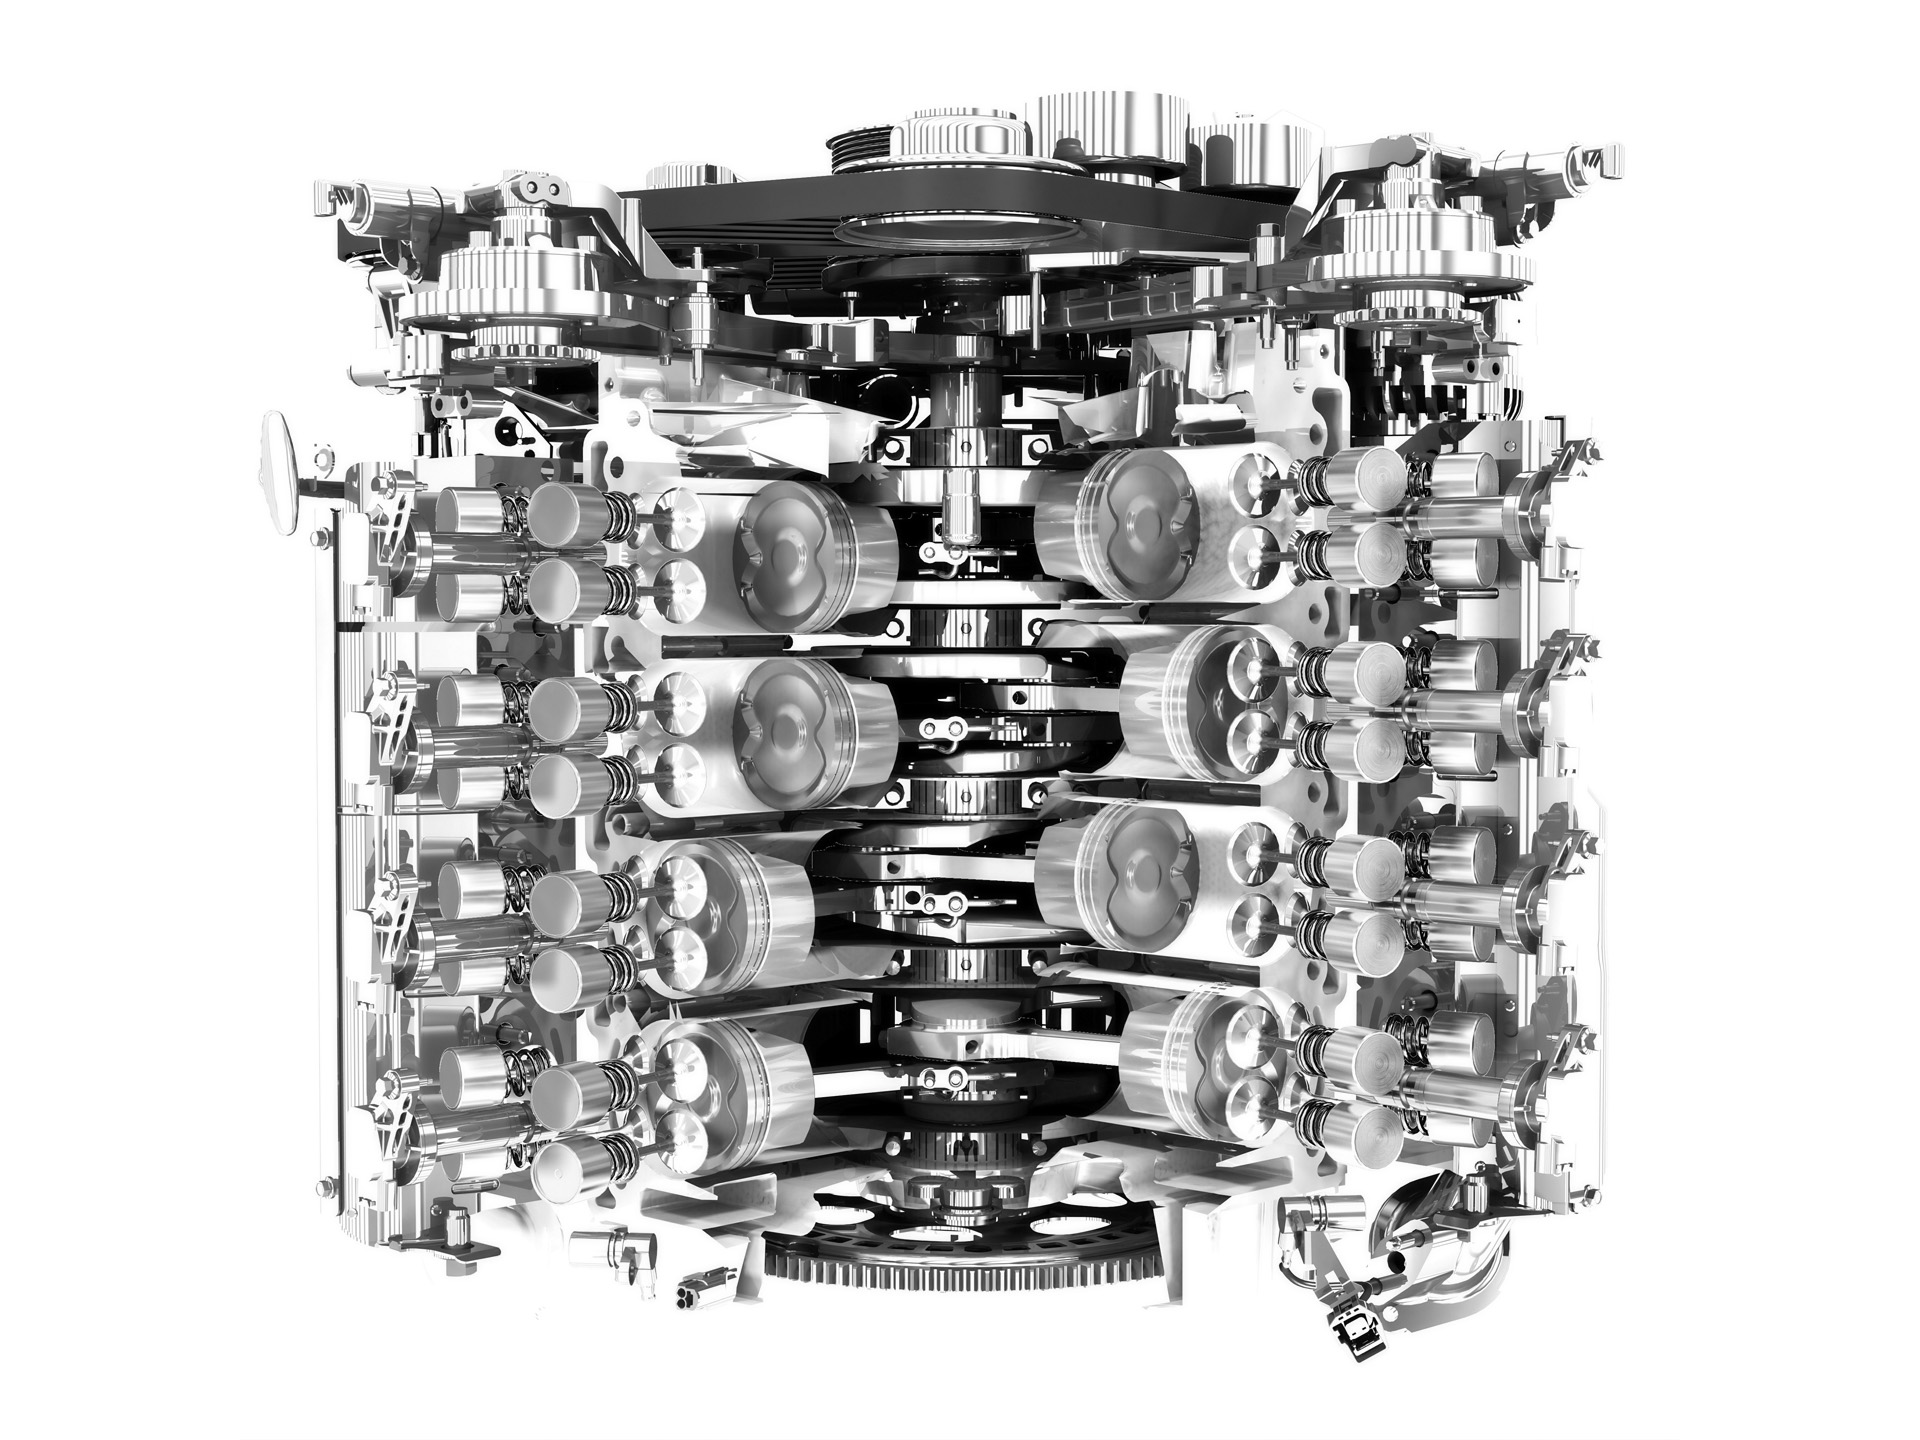 Sample P2590 Engine